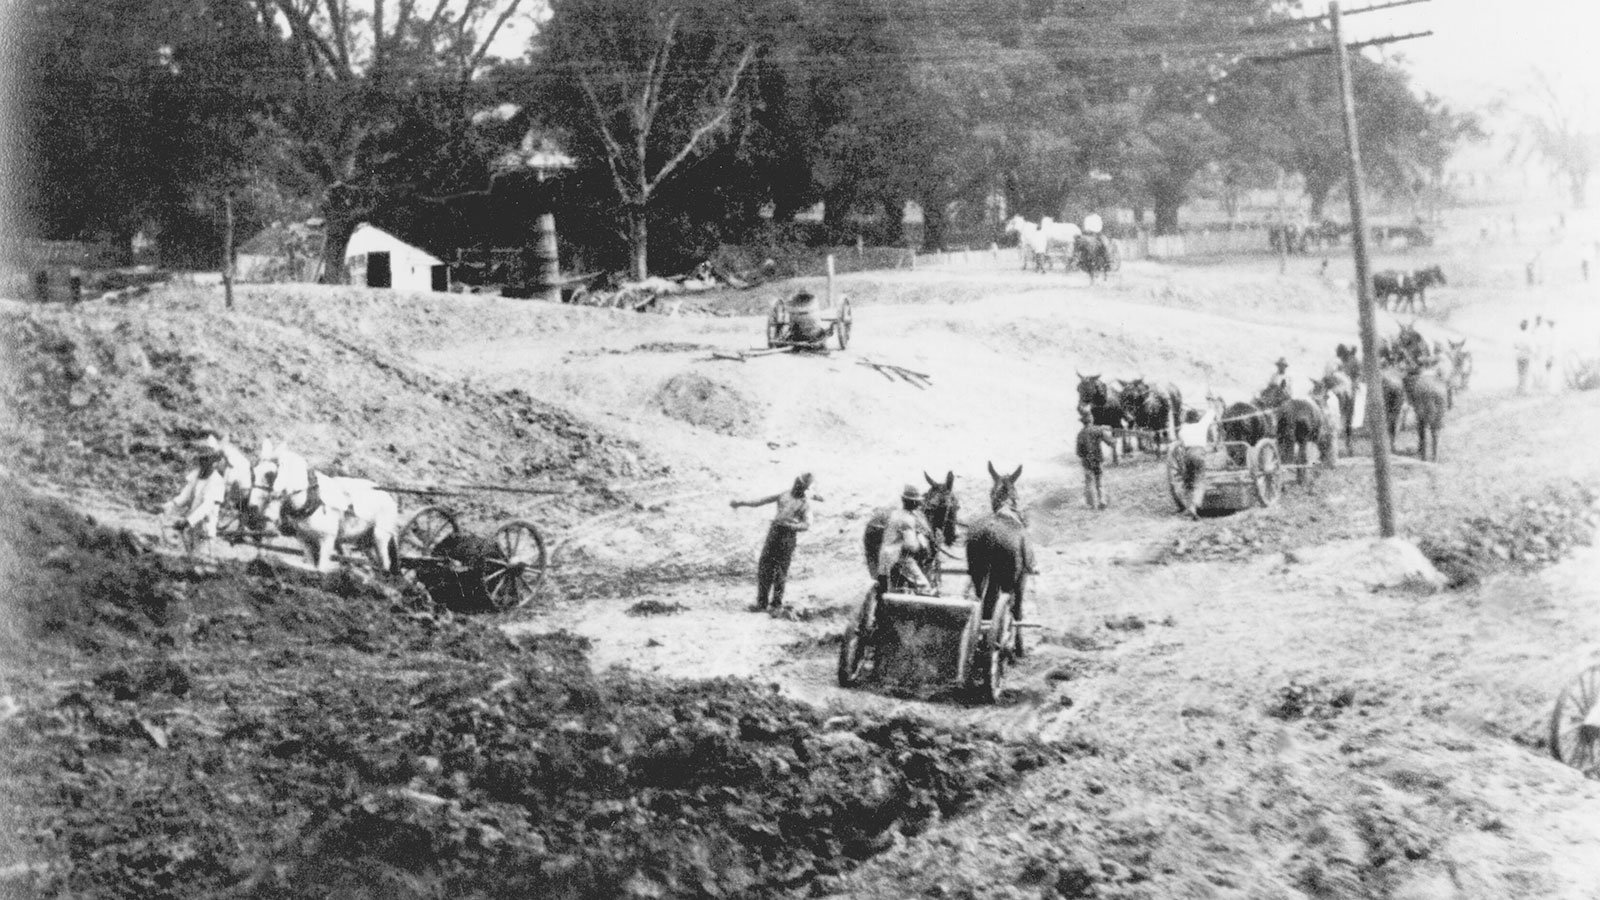 Early levee construction in Louisiana, circa 1880